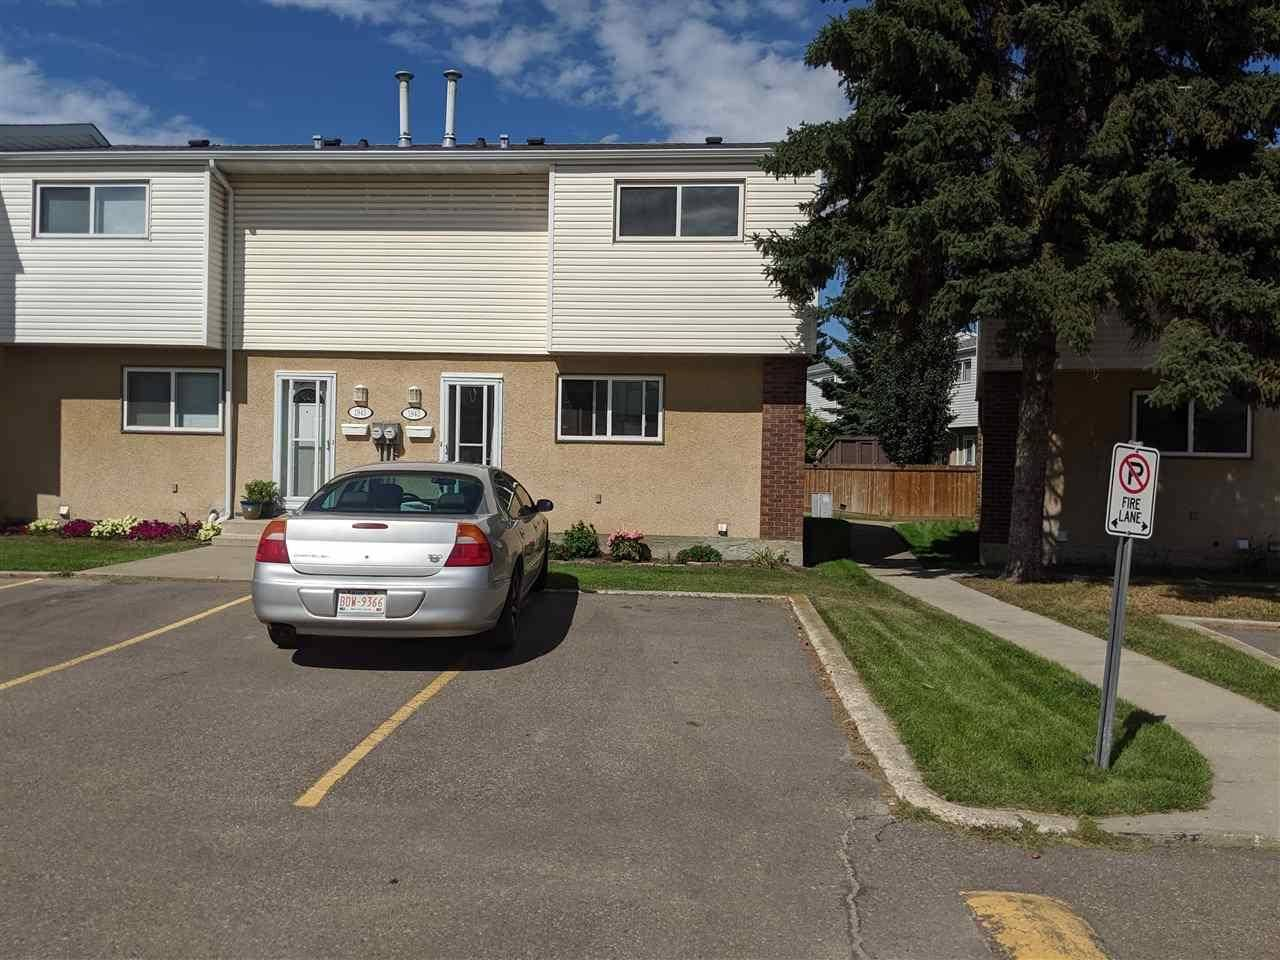 Townhouse for sale at 1943 73 St Nw Edmonton Alberta - MLS: E4177842